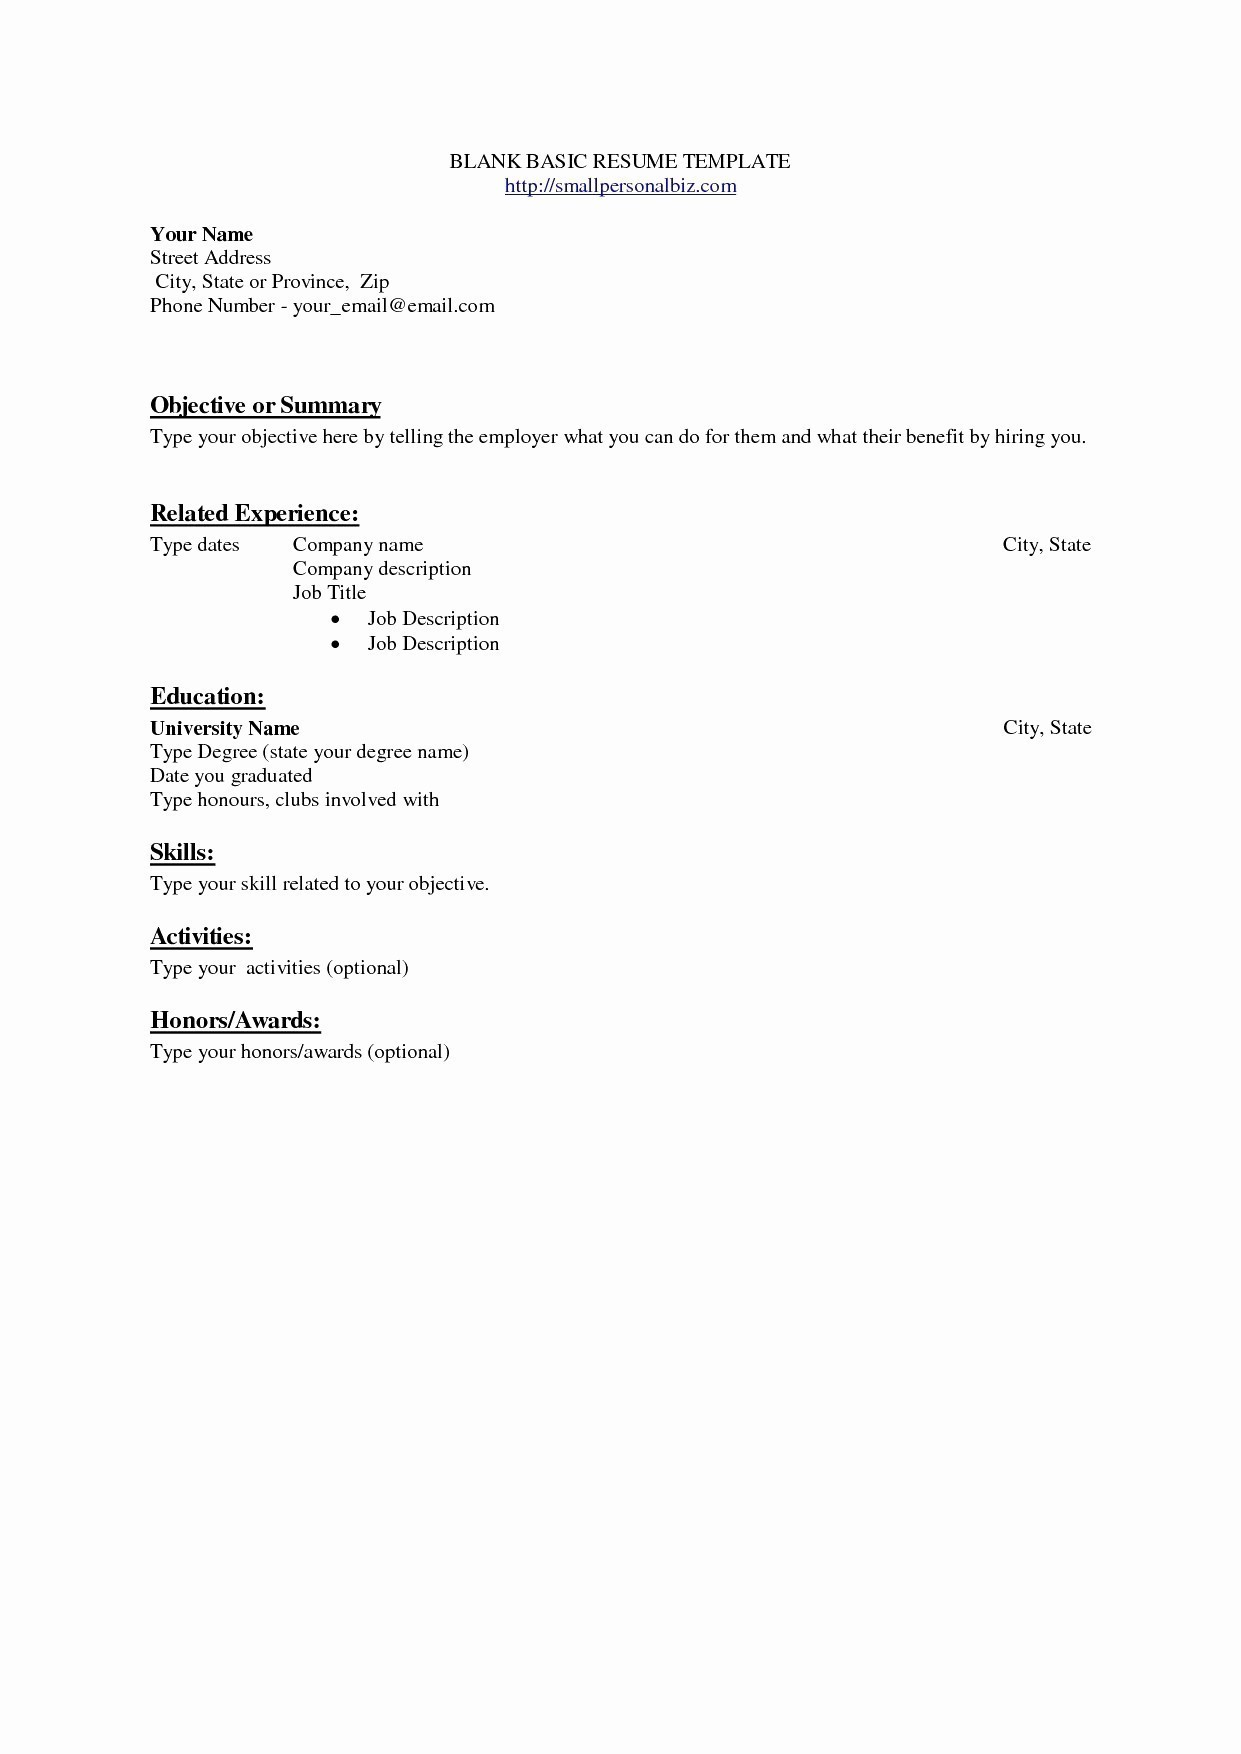 Basic Work Resume - Resume for Work Best Resumes for Jobs Awesome Fresh Examples Resumes